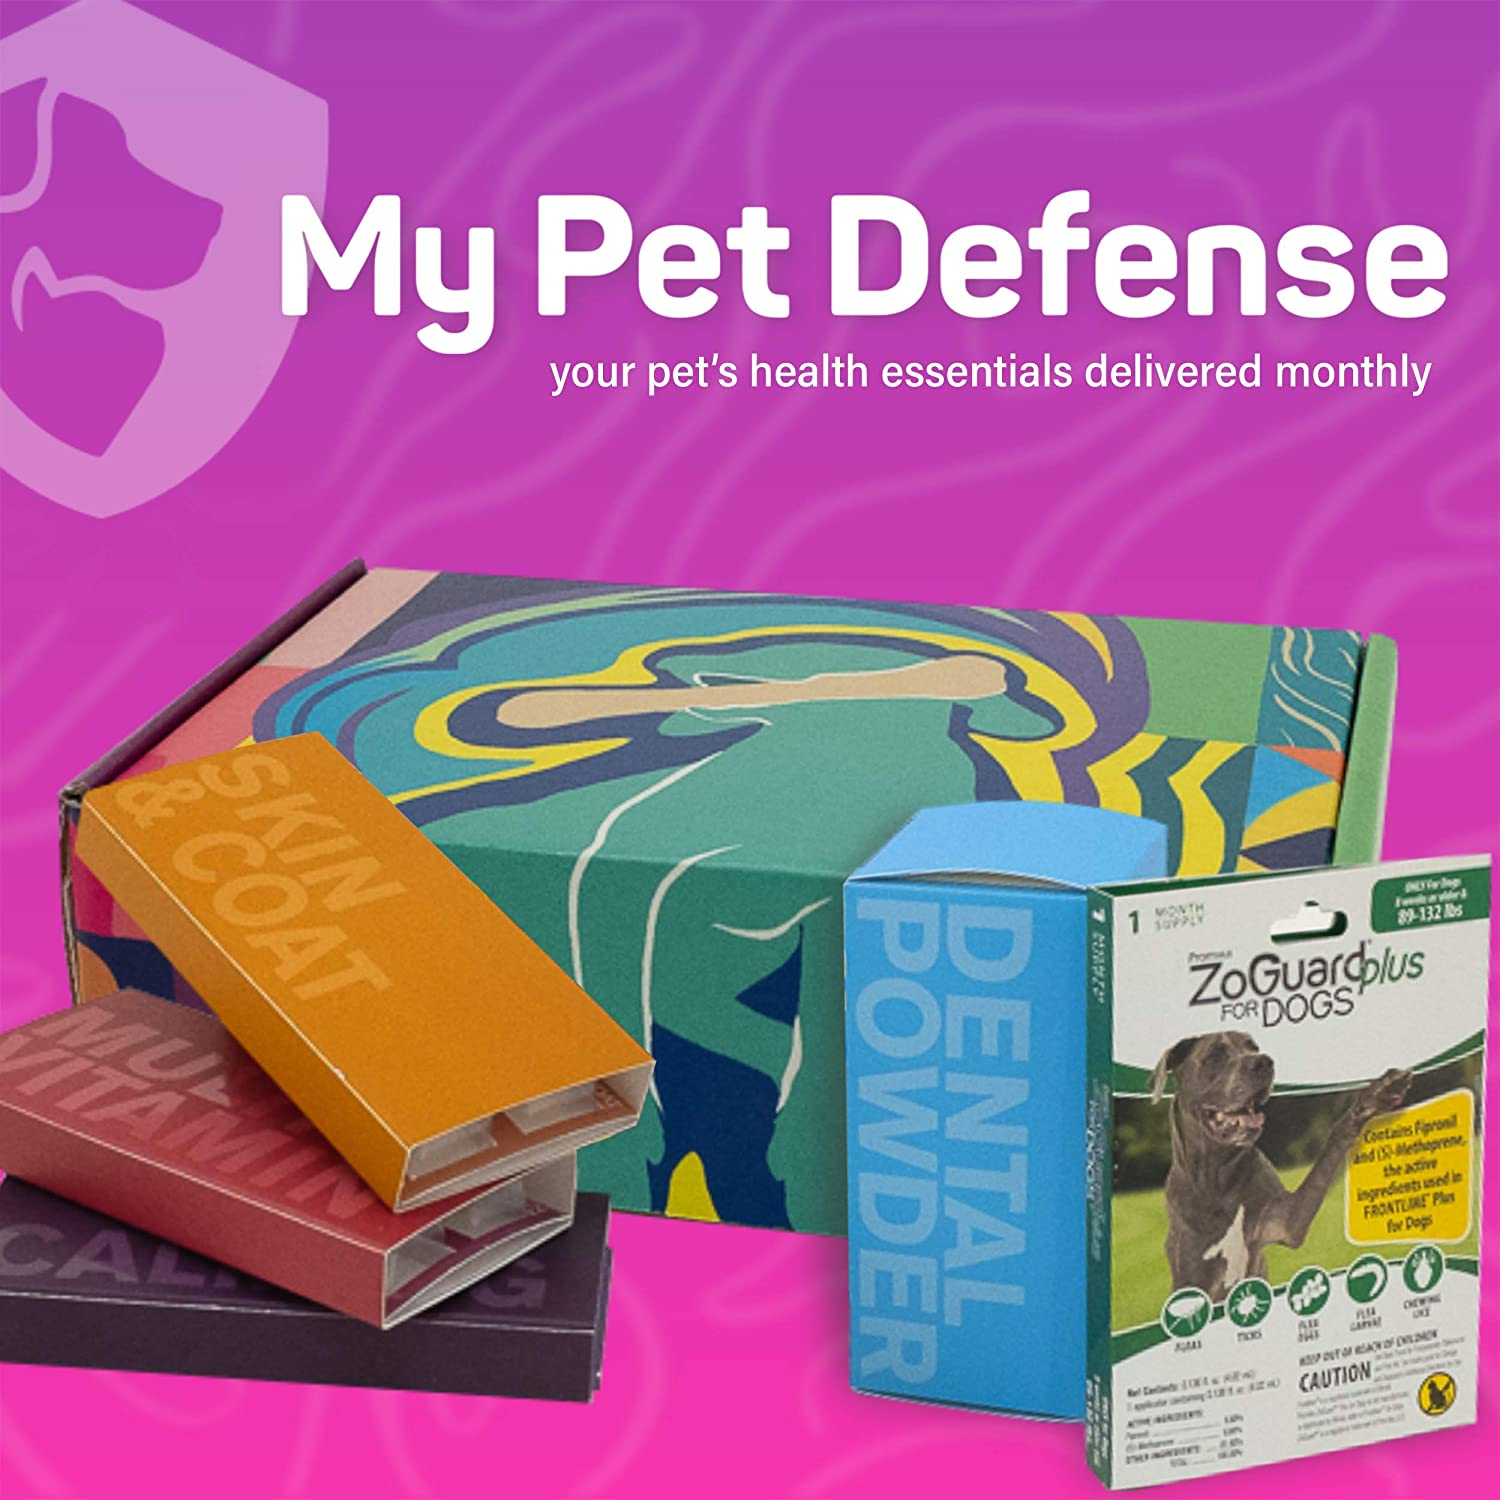 My Pet Defense Monthly Subscription Box - Dog Dental Care, Flea and Tick Prevention for Dogs, Grain Free Dog Supplements: Small (5-22 lb)